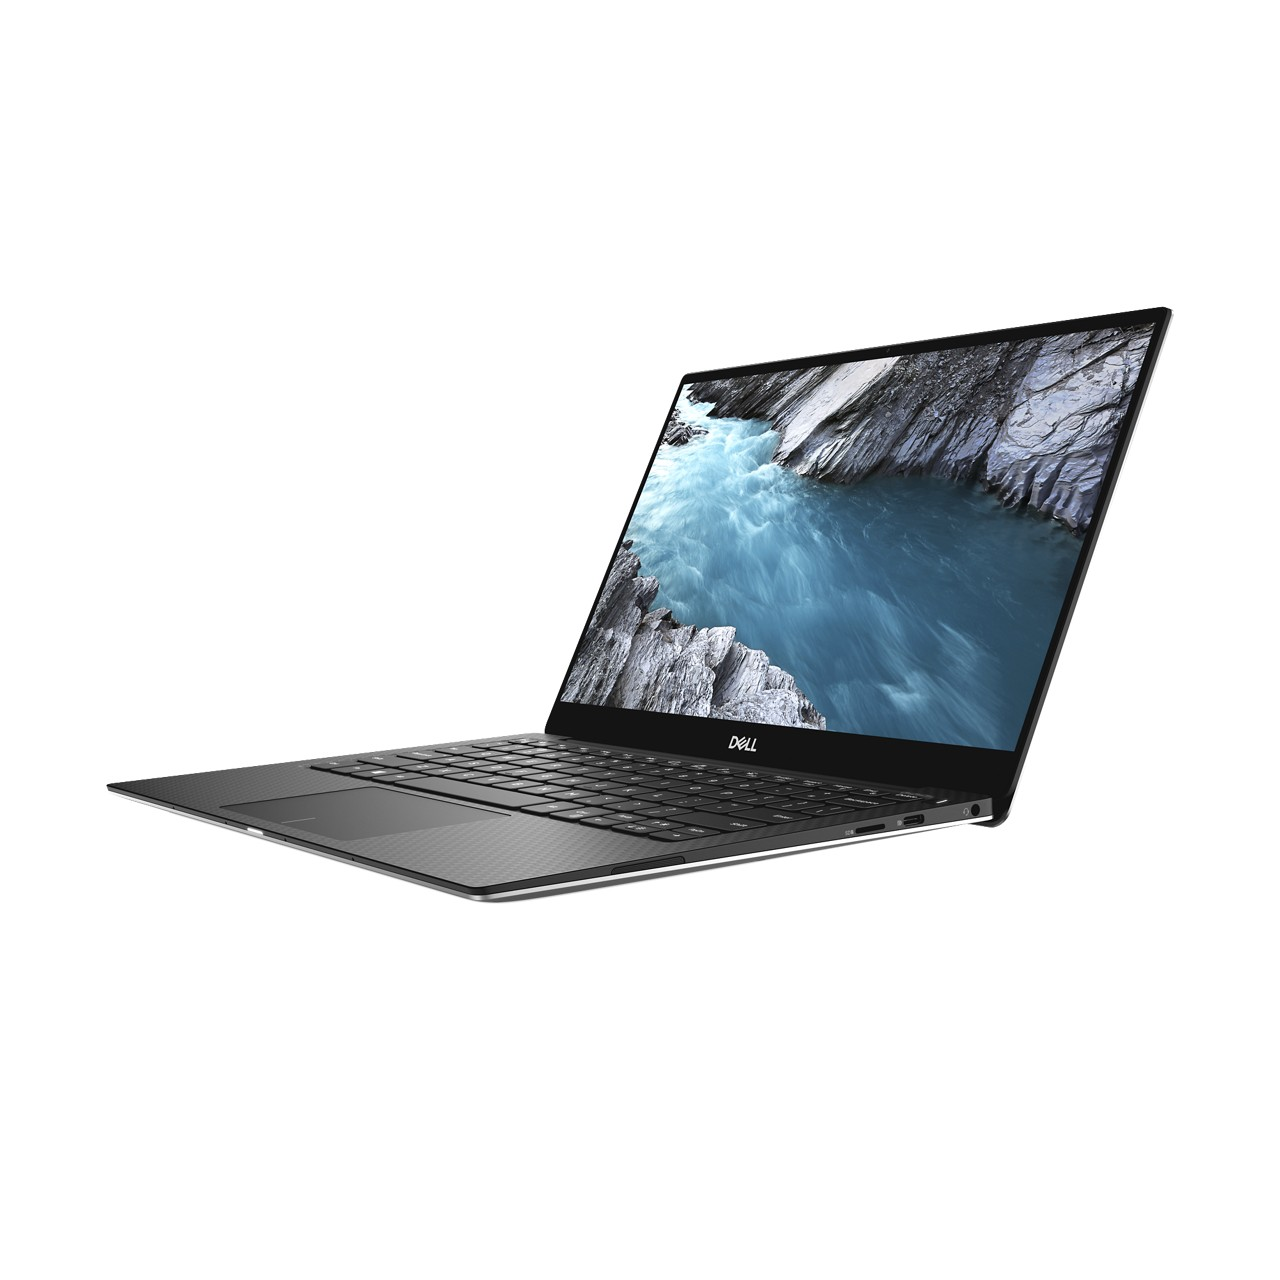 DELL XPS 18 INTEL BLUETOOTH 64BIT DRIVER DOWNLOAD